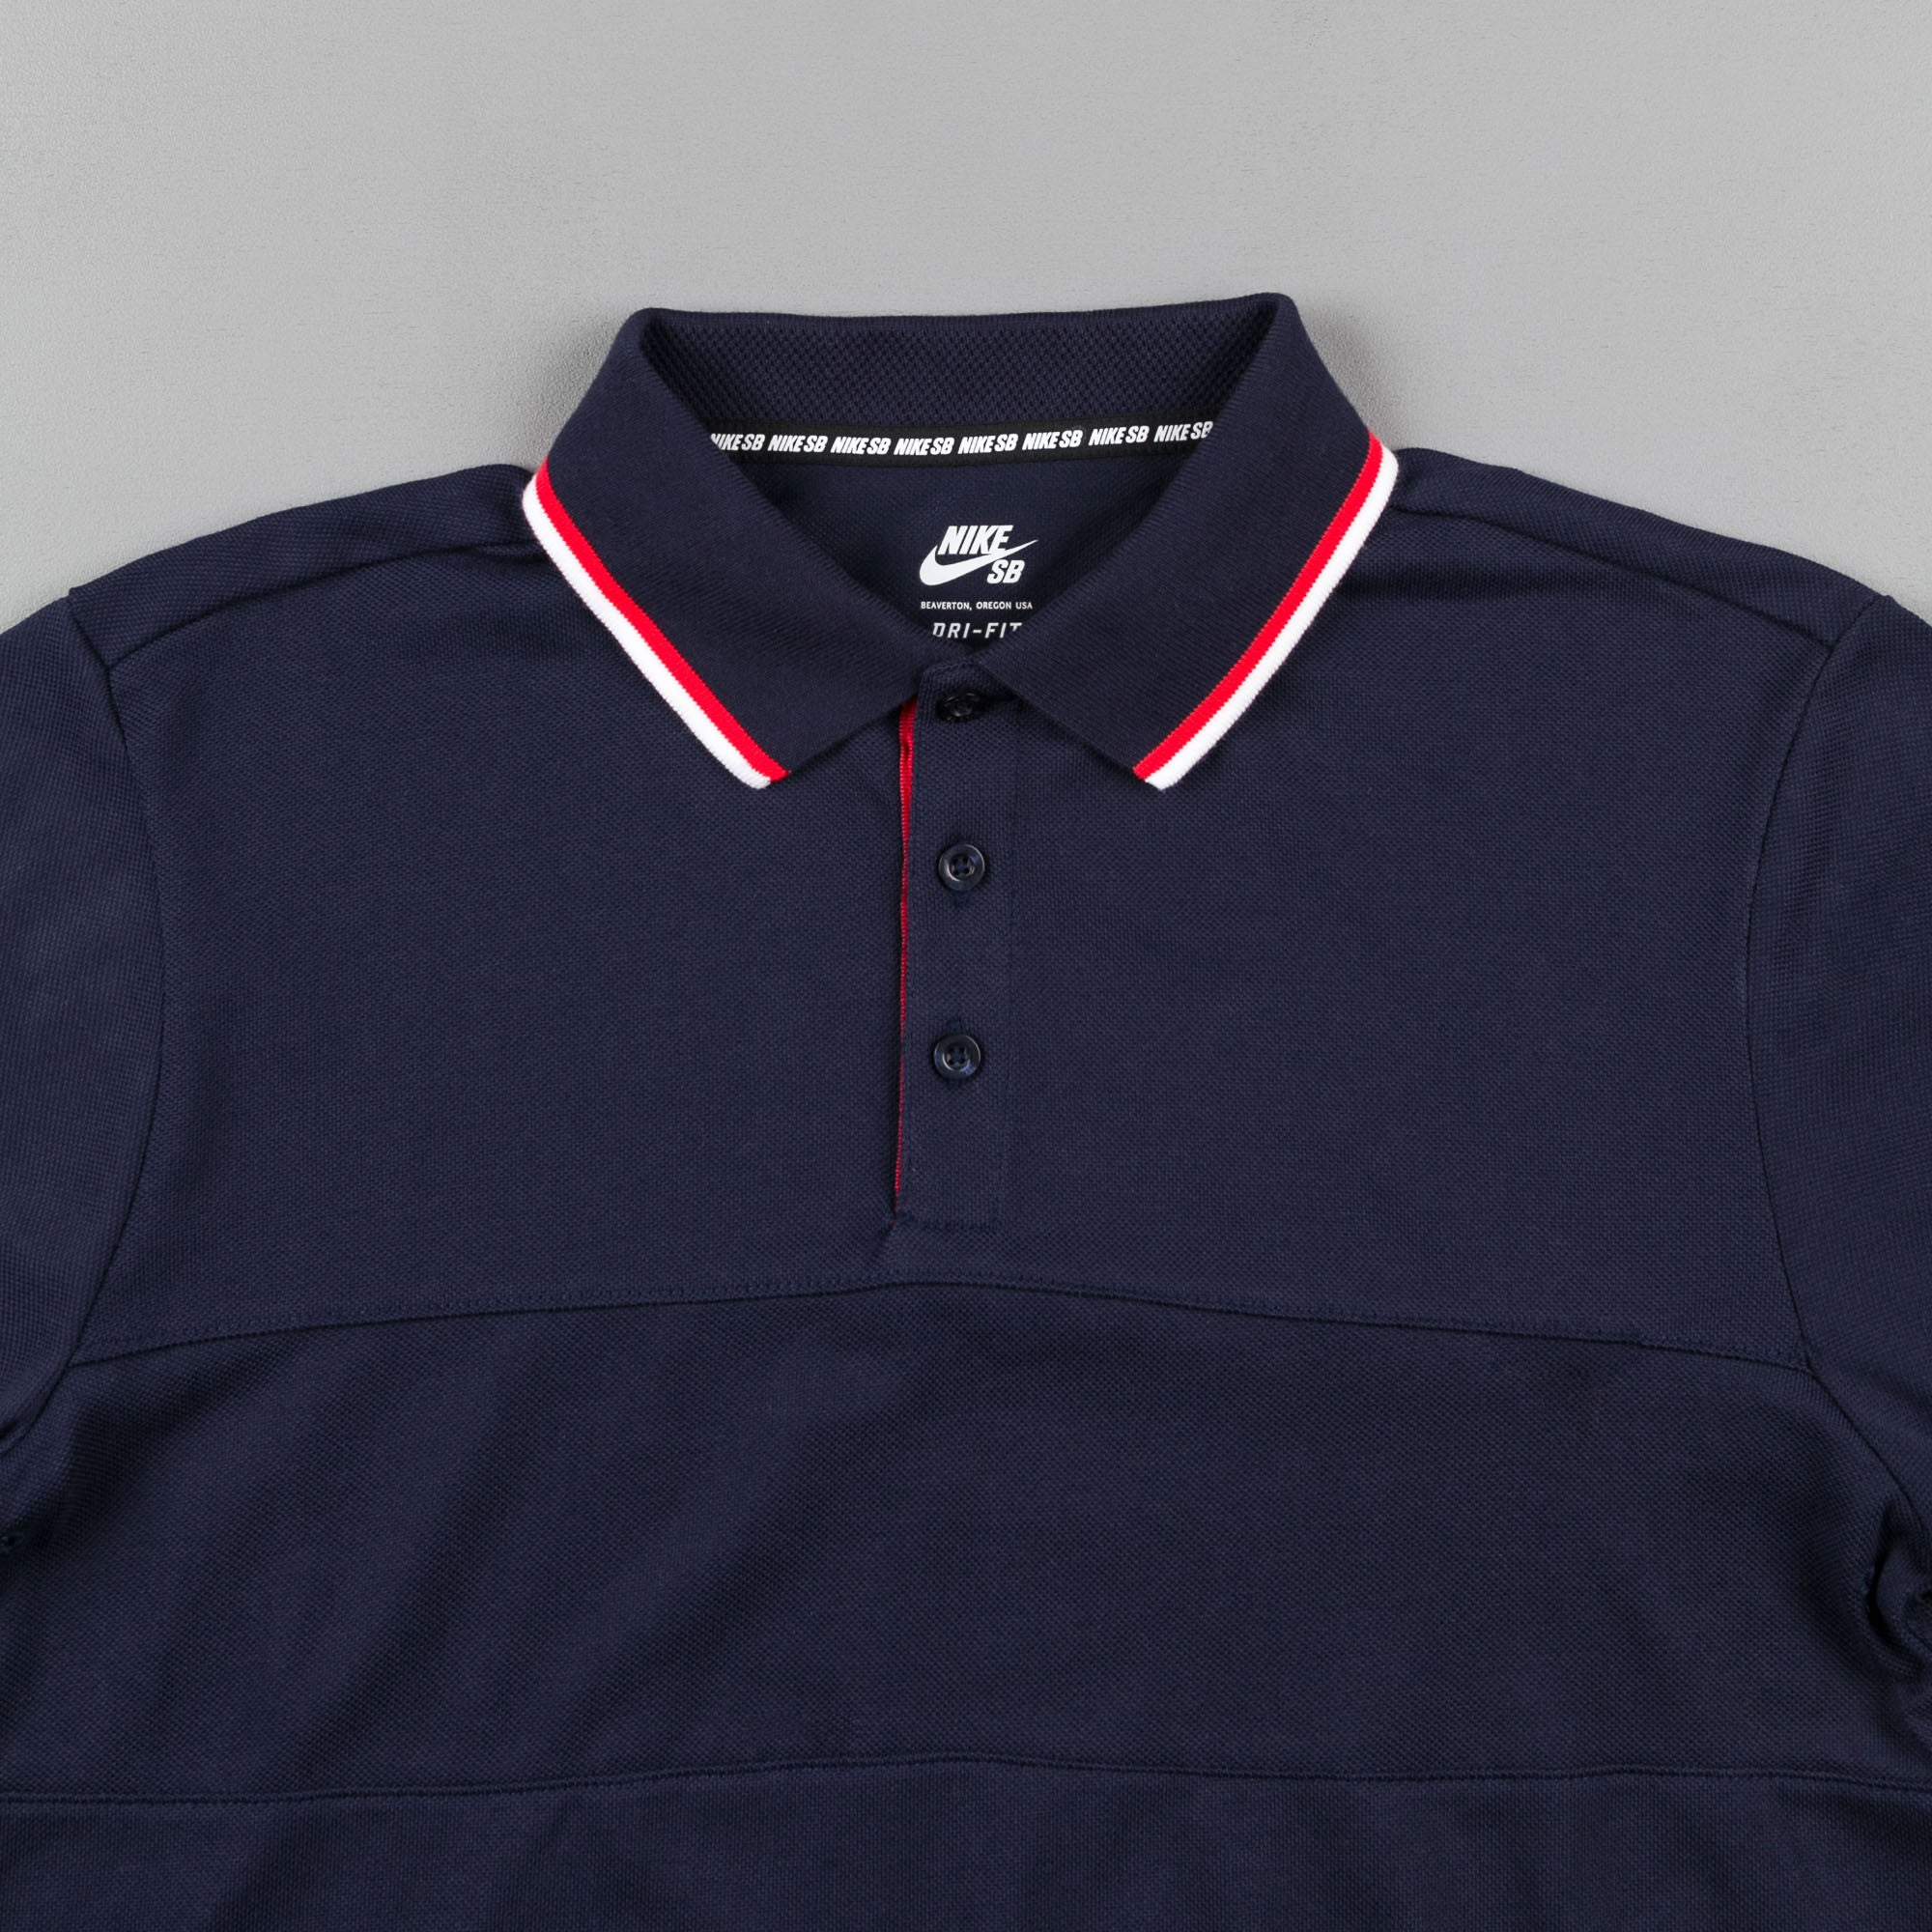 Nike SB x 917 Long Sleeve Polo Shirt - Obsidian | Flatspot